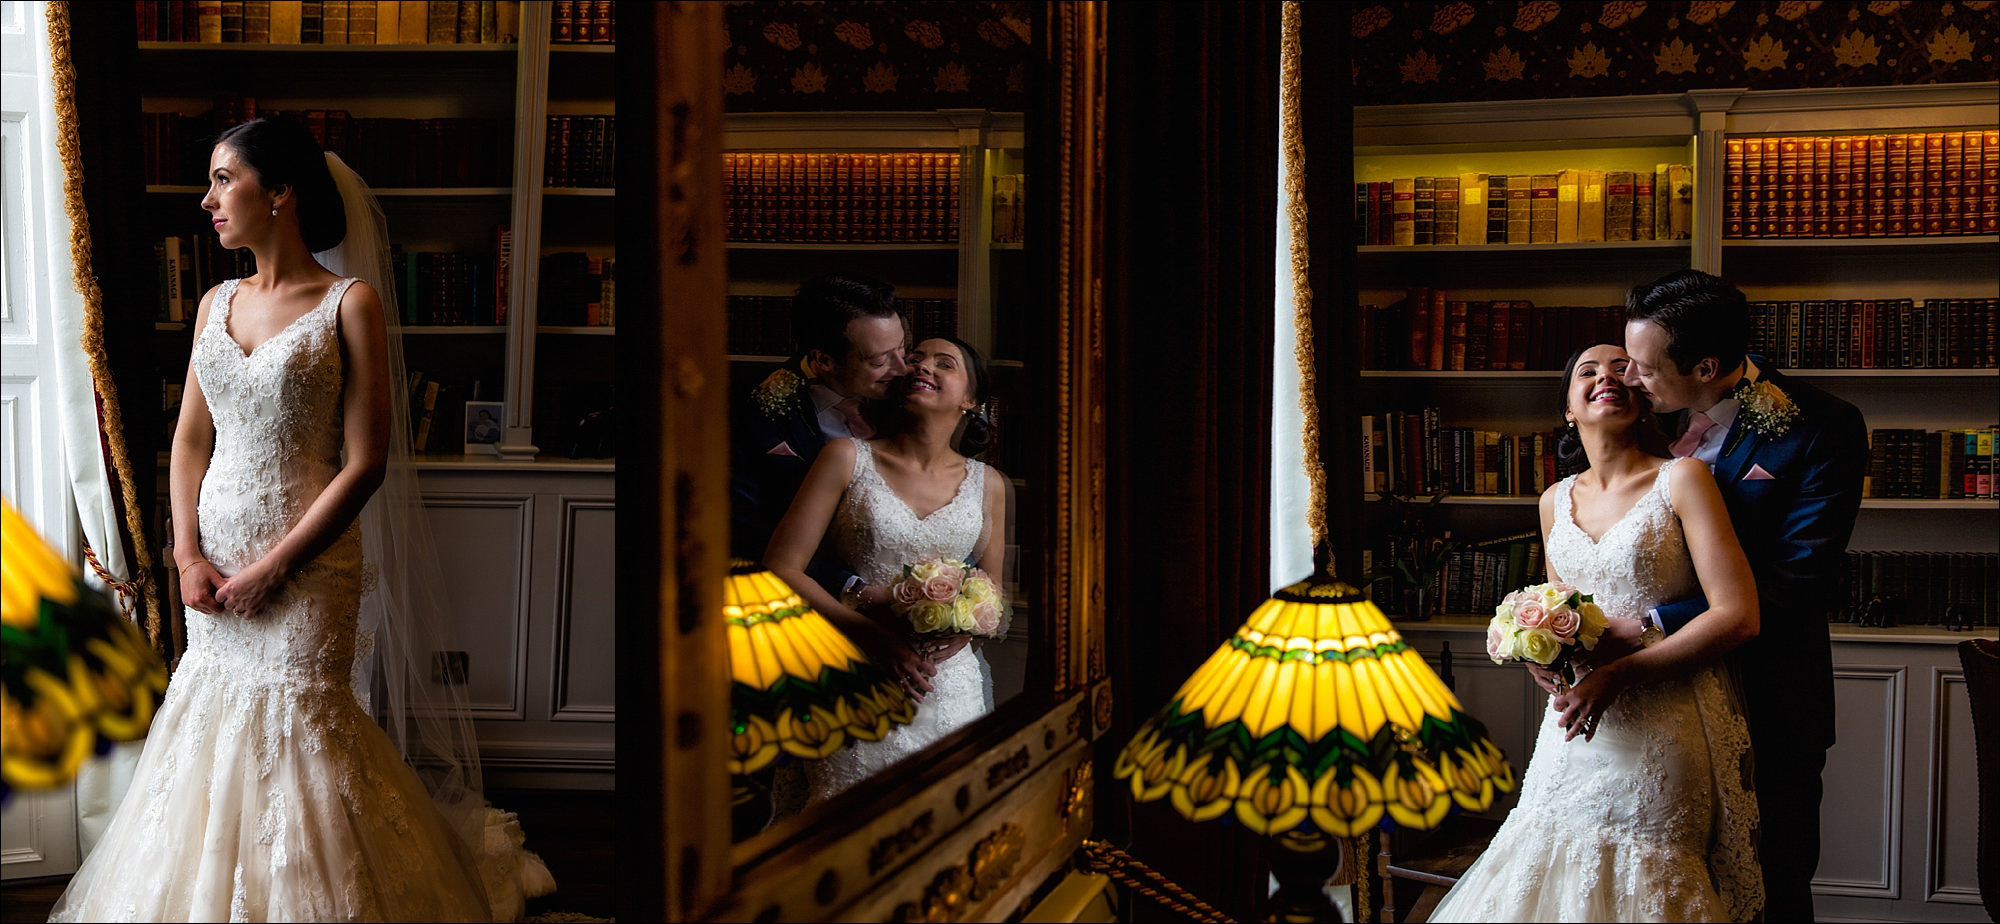 dublin wedding photographer david duignan photography bellingham castle weddings Ireland 0055